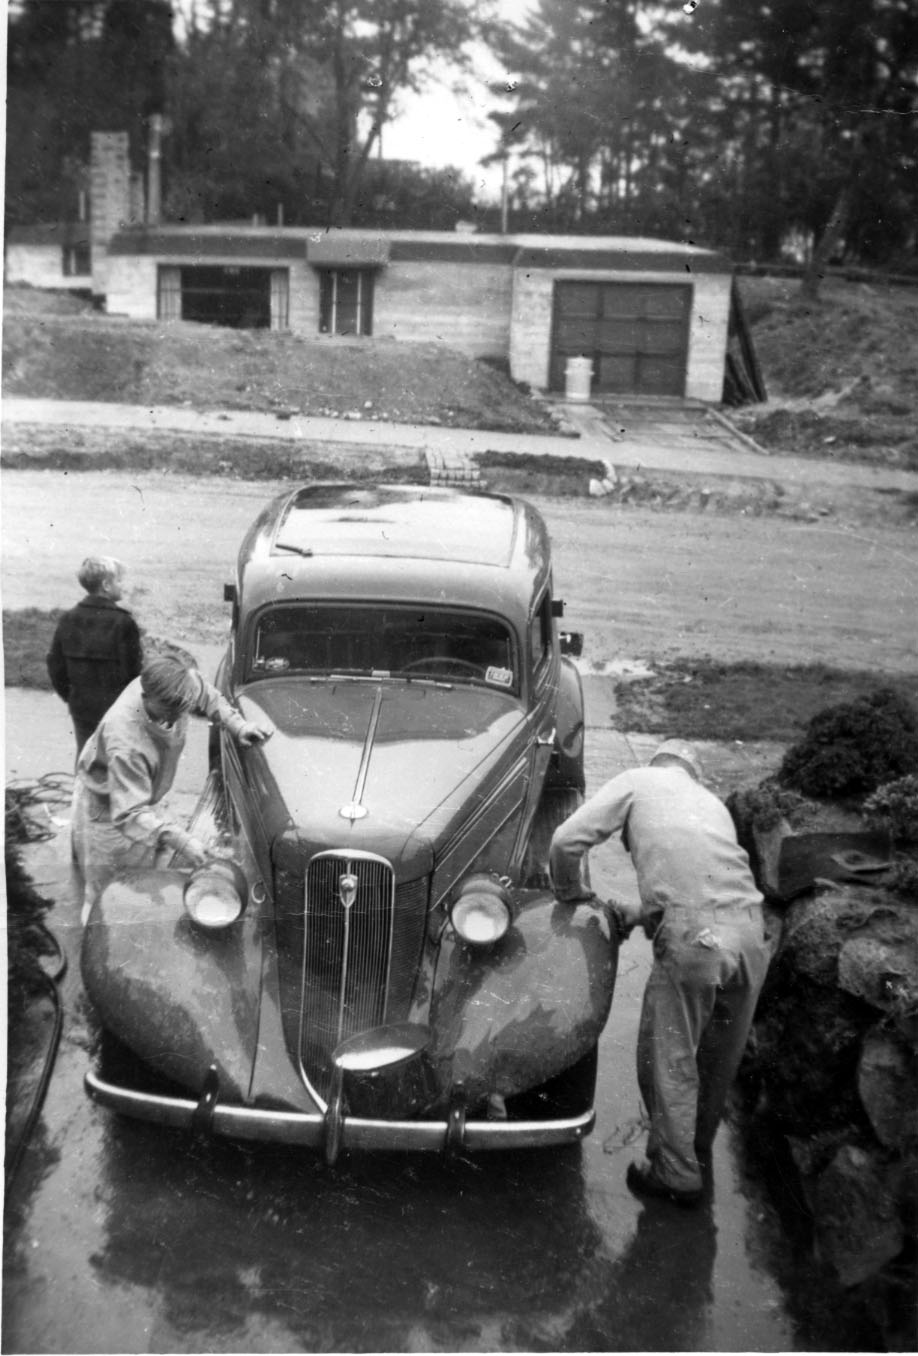 Cars On Line >> File:Family washing car, West Seattle, 1960.jpg ...